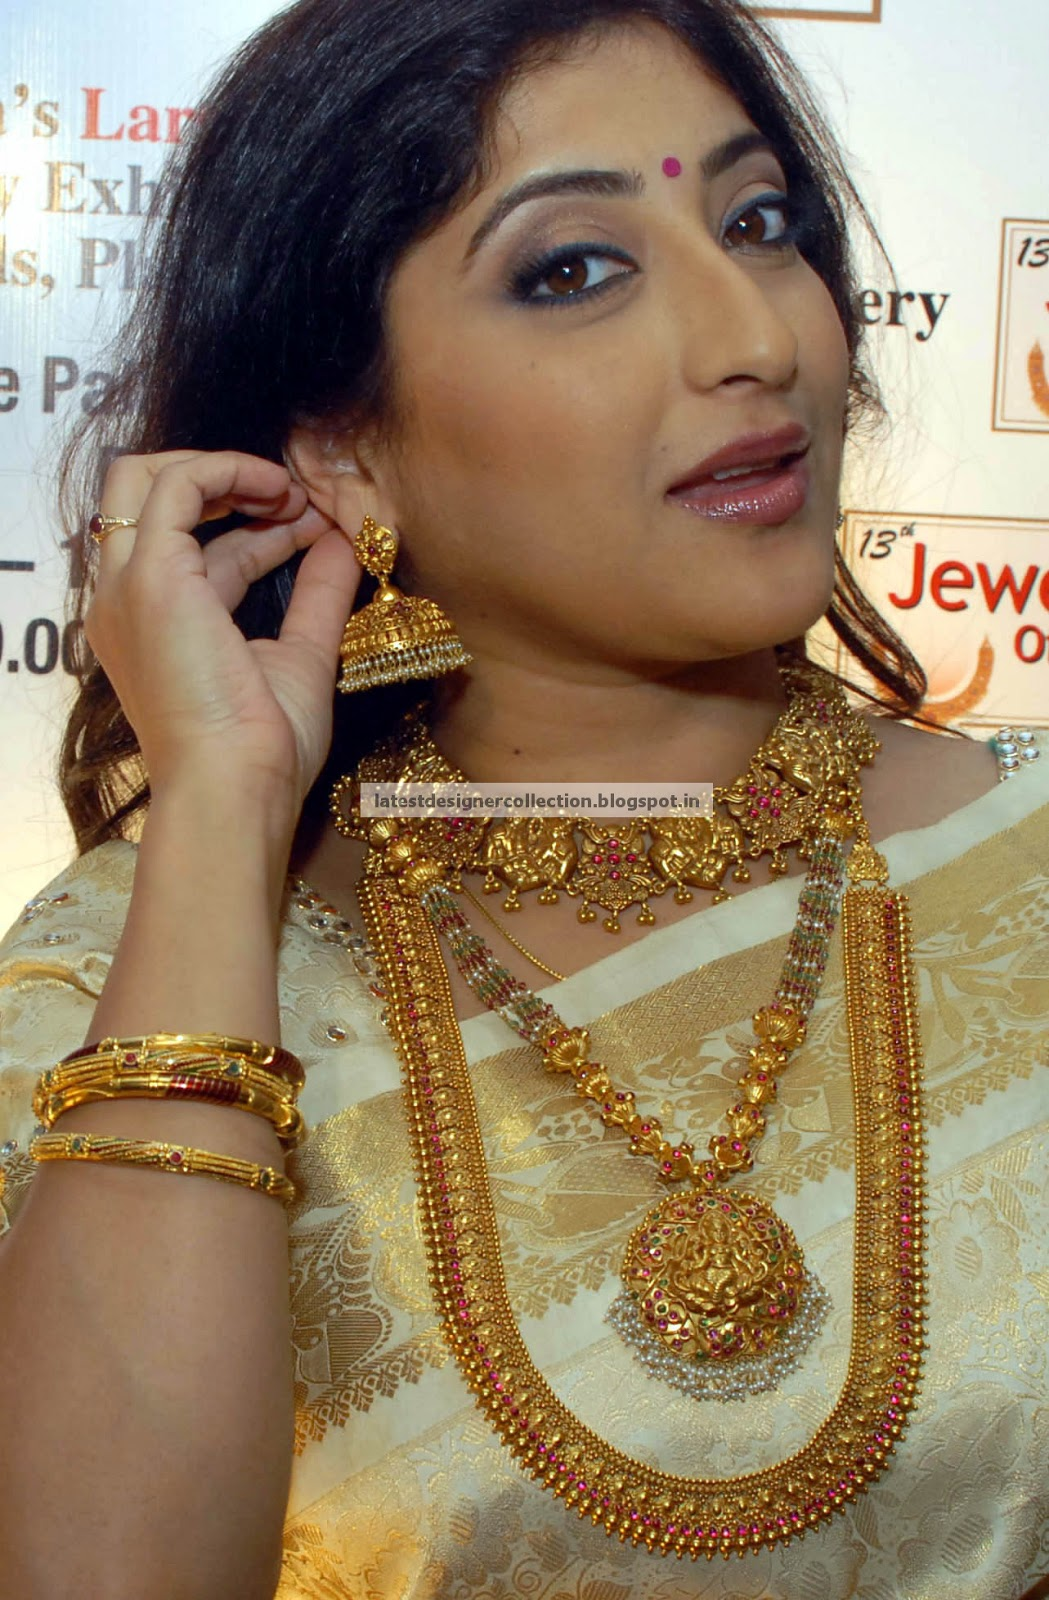 Malabar Gold Models Latest Indian Clothing And Jewellery